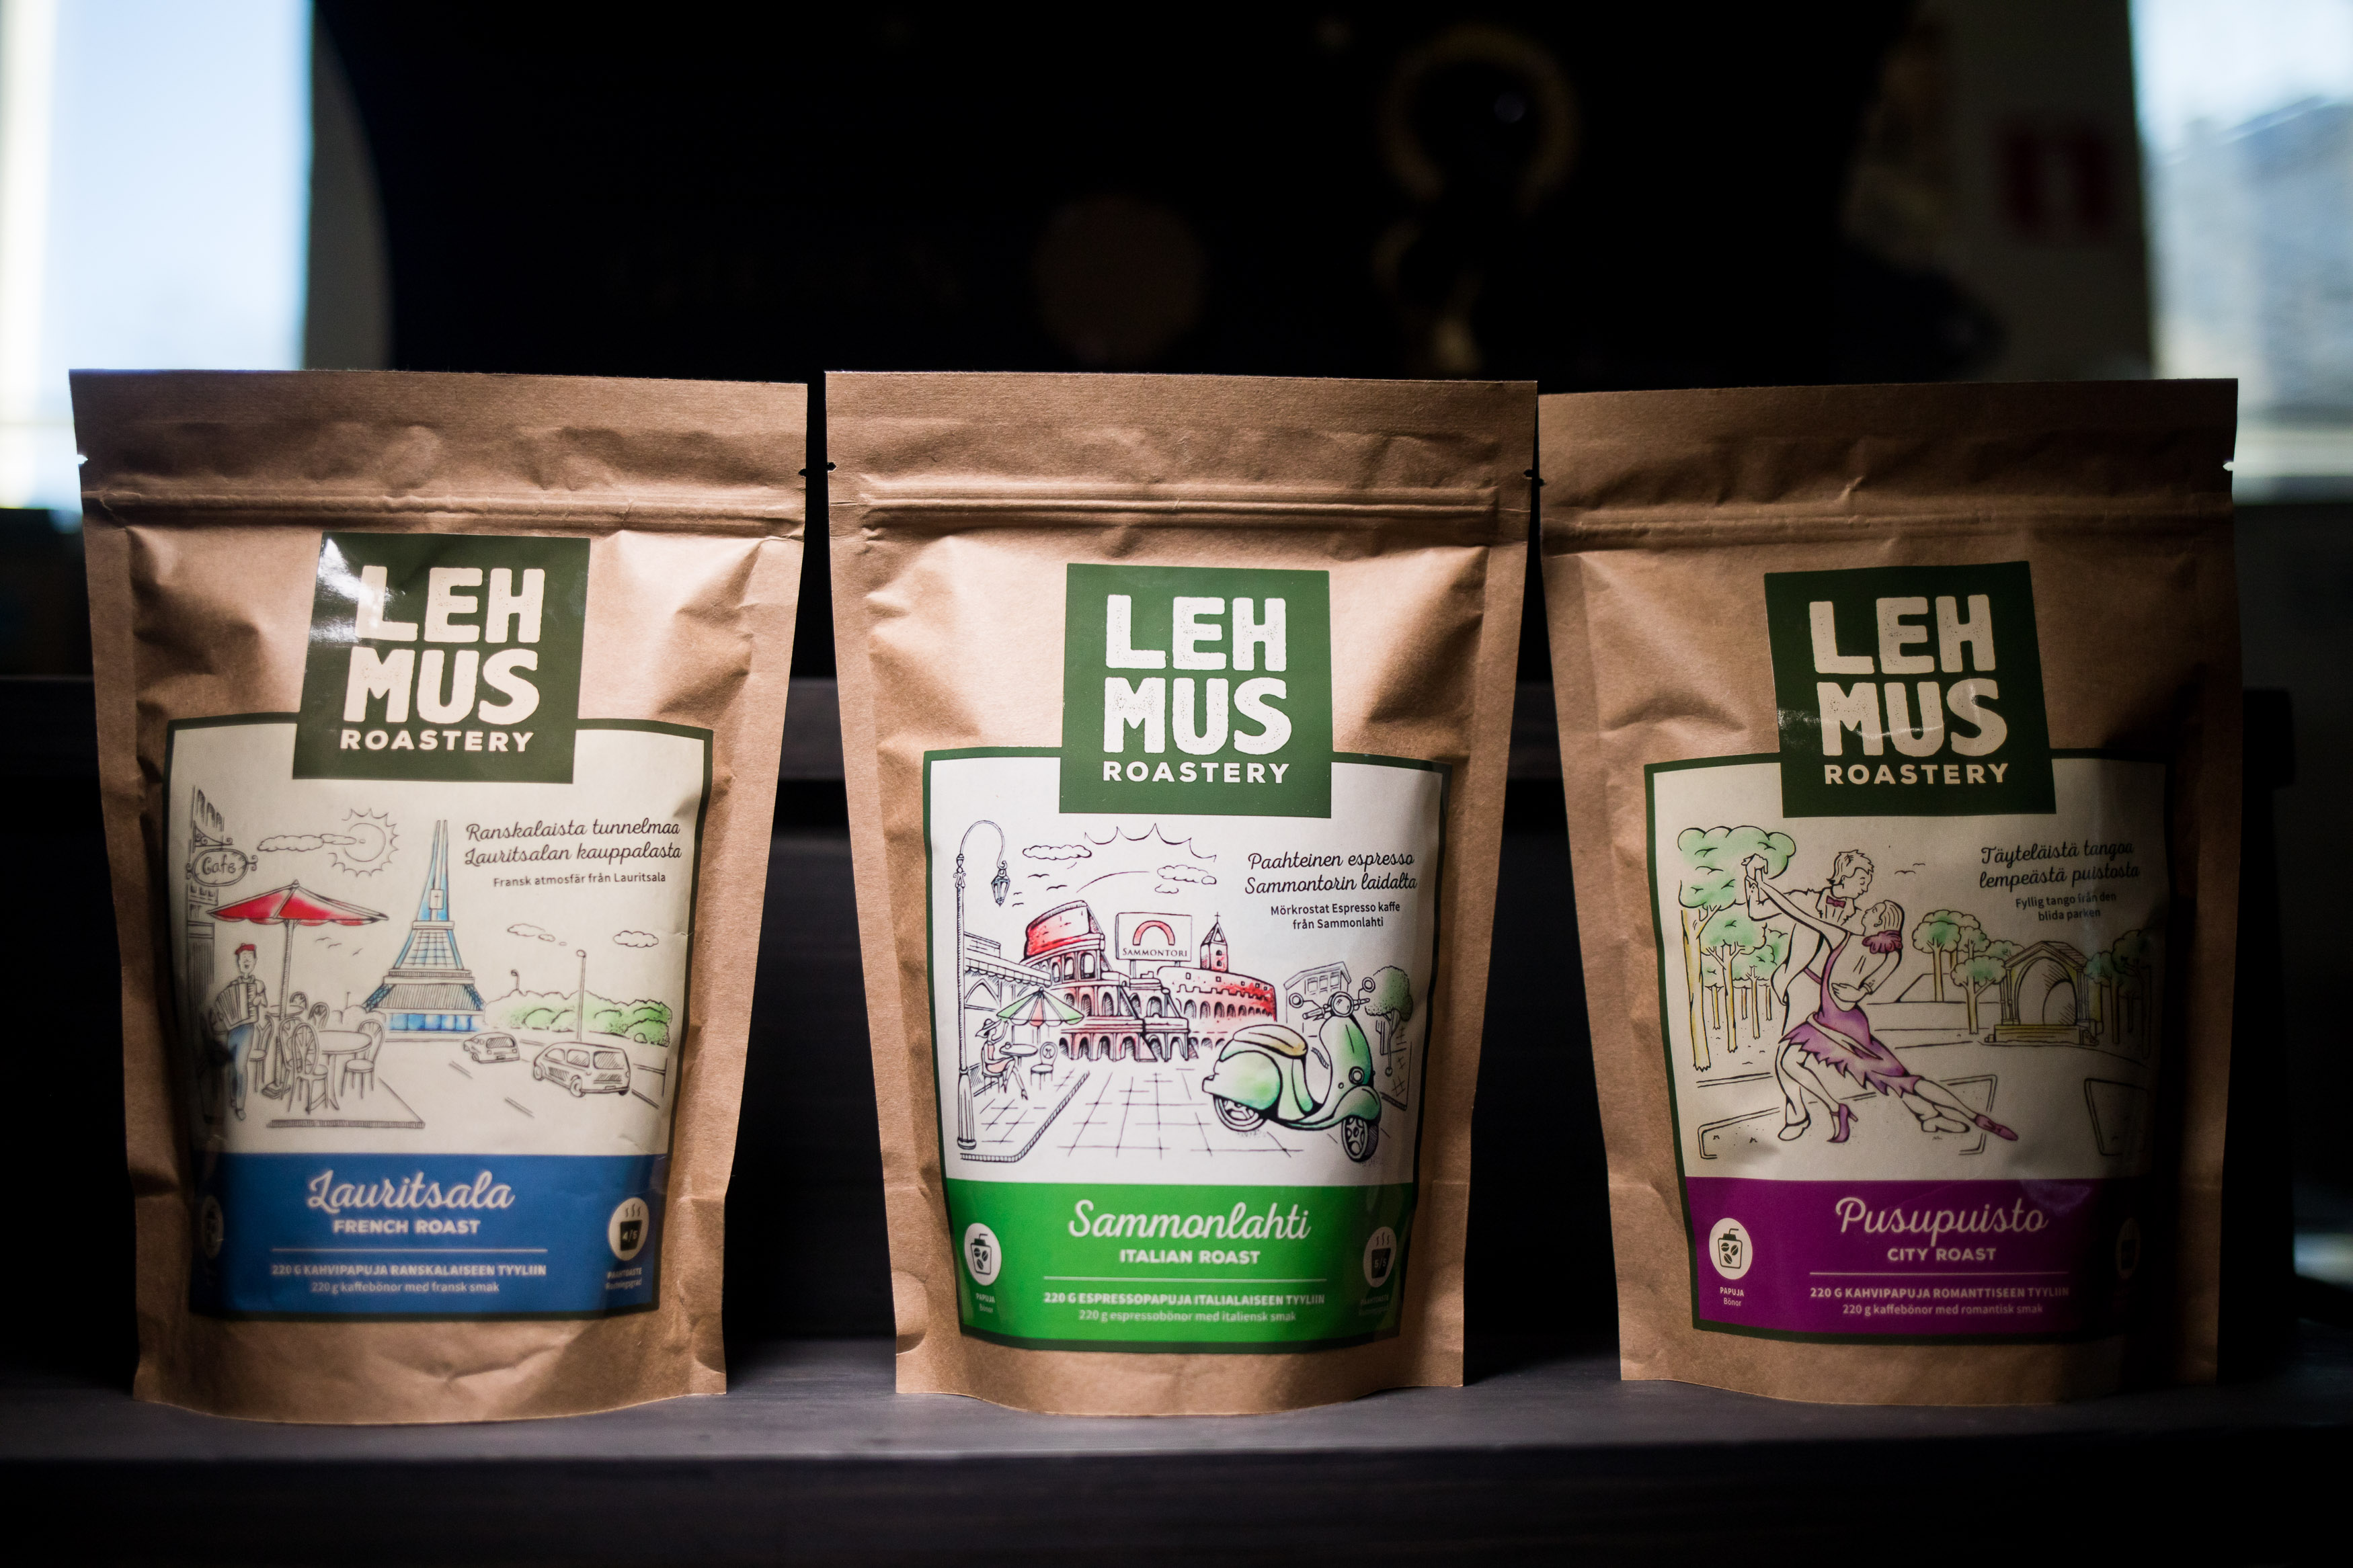 Lehmus Roastery – 3 coffees